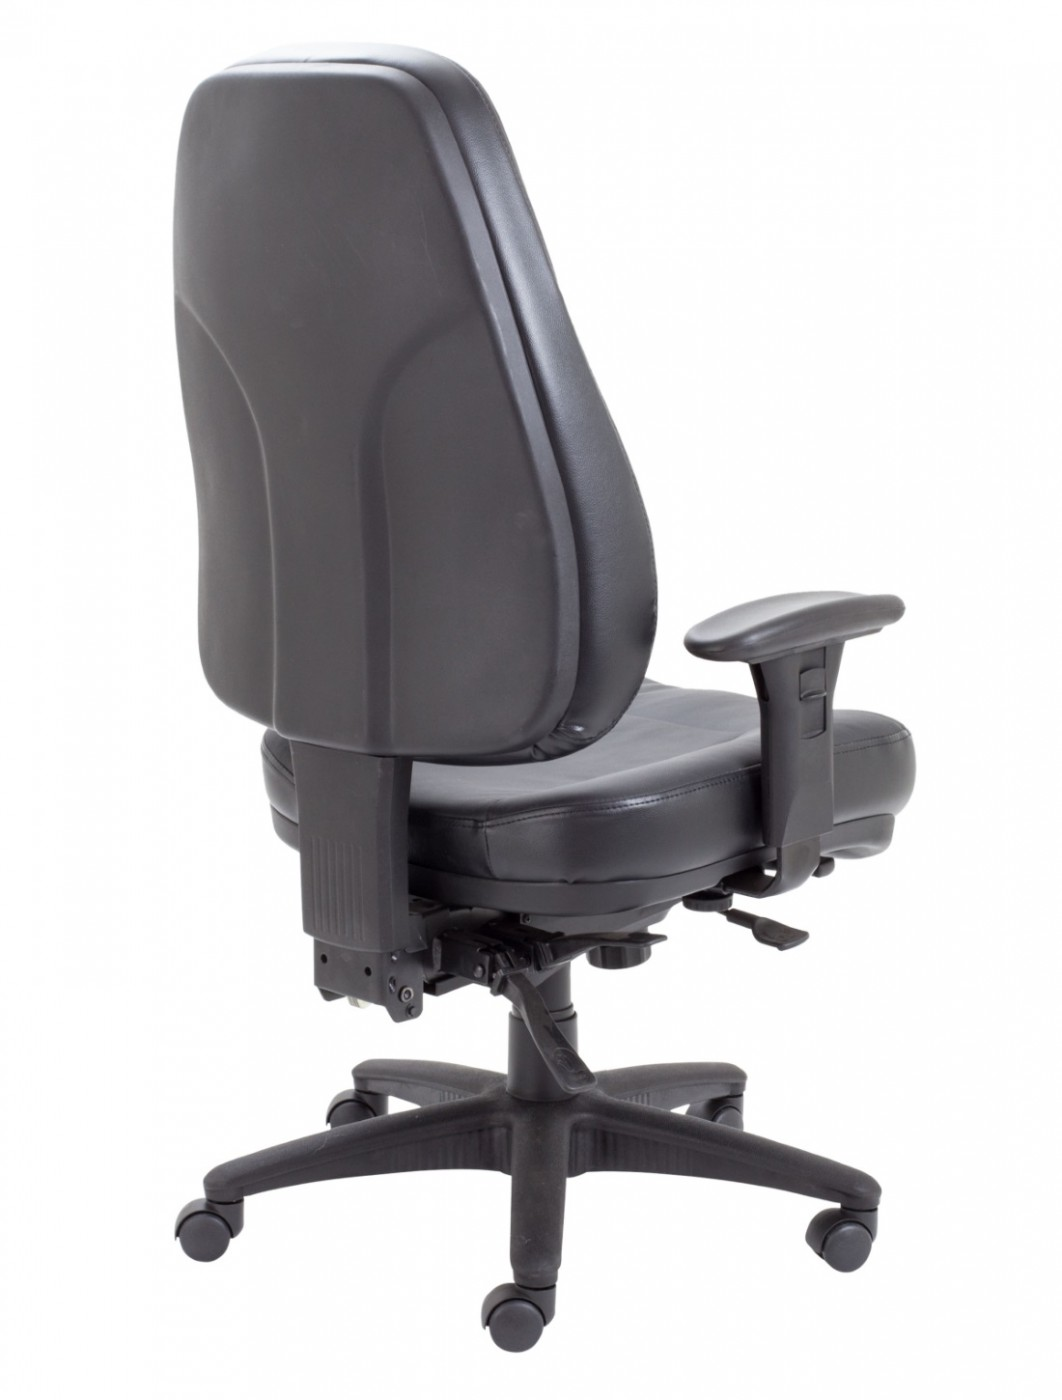 office chairs tc panther black leather office chair ch1101 121 office furniture. Black Bedroom Furniture Sets. Home Design Ideas